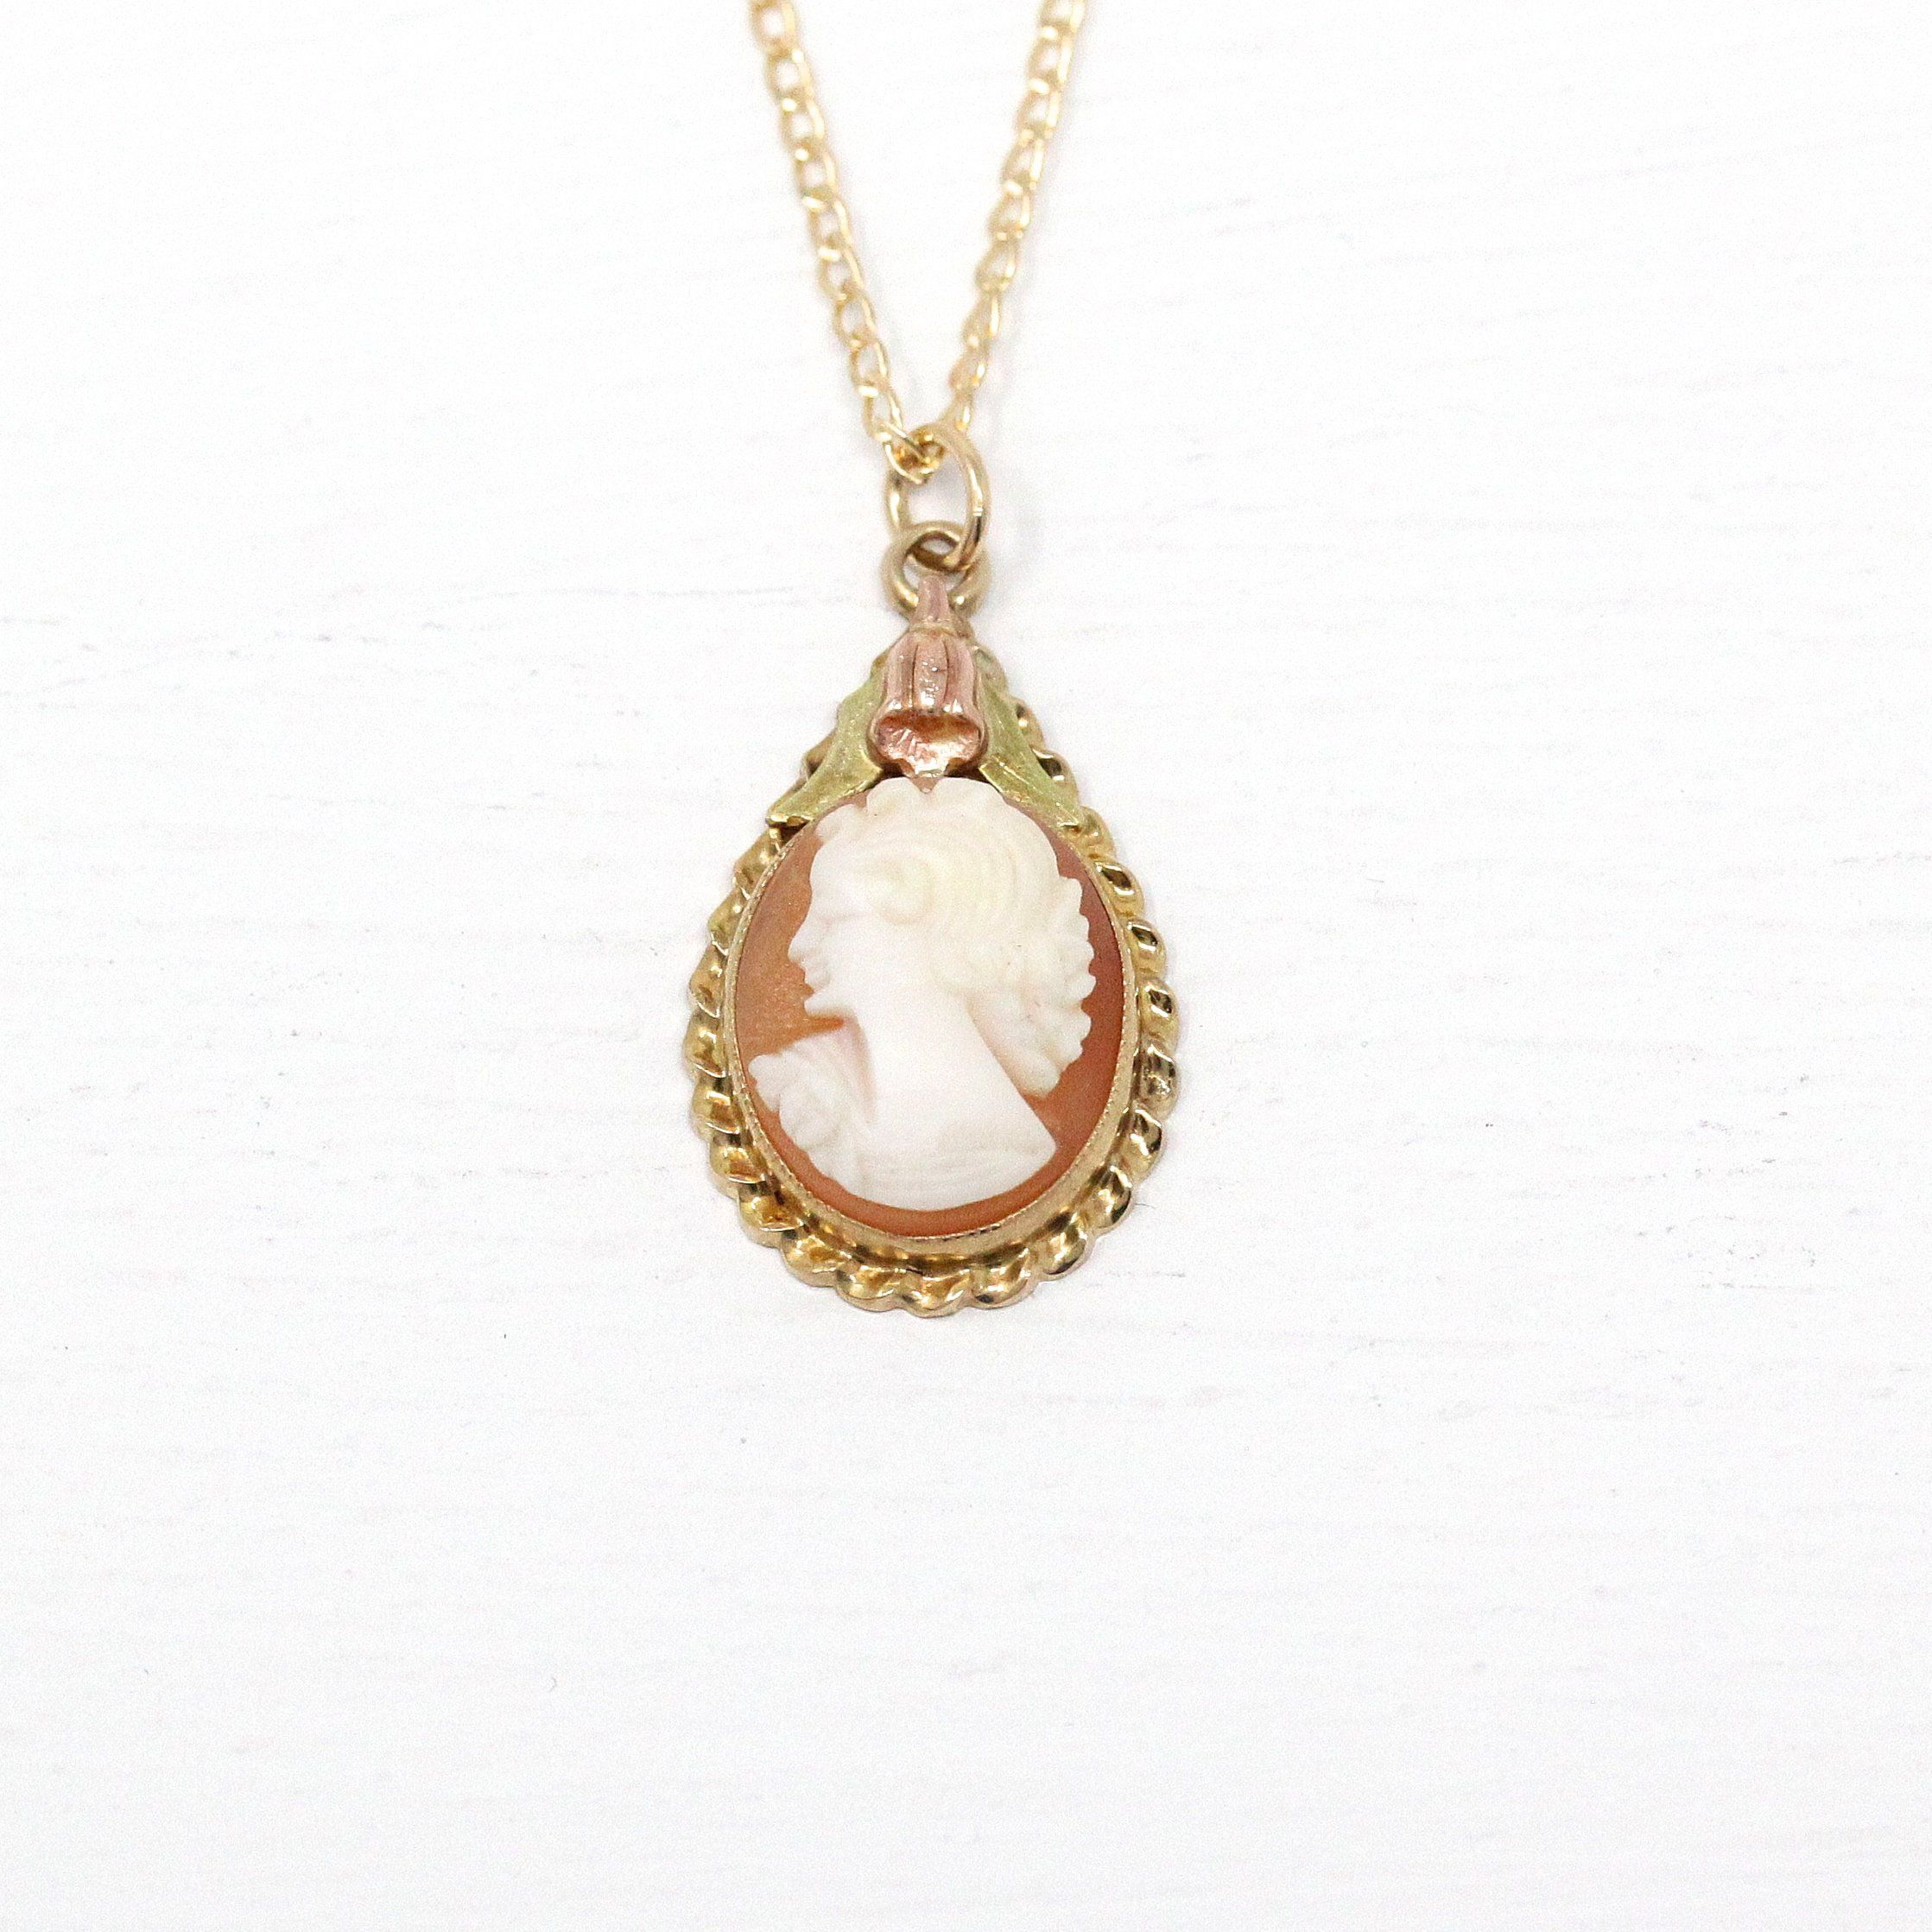 925 pure silver//yellow gold  real mother of pearl handmade Cameo diamond pendant